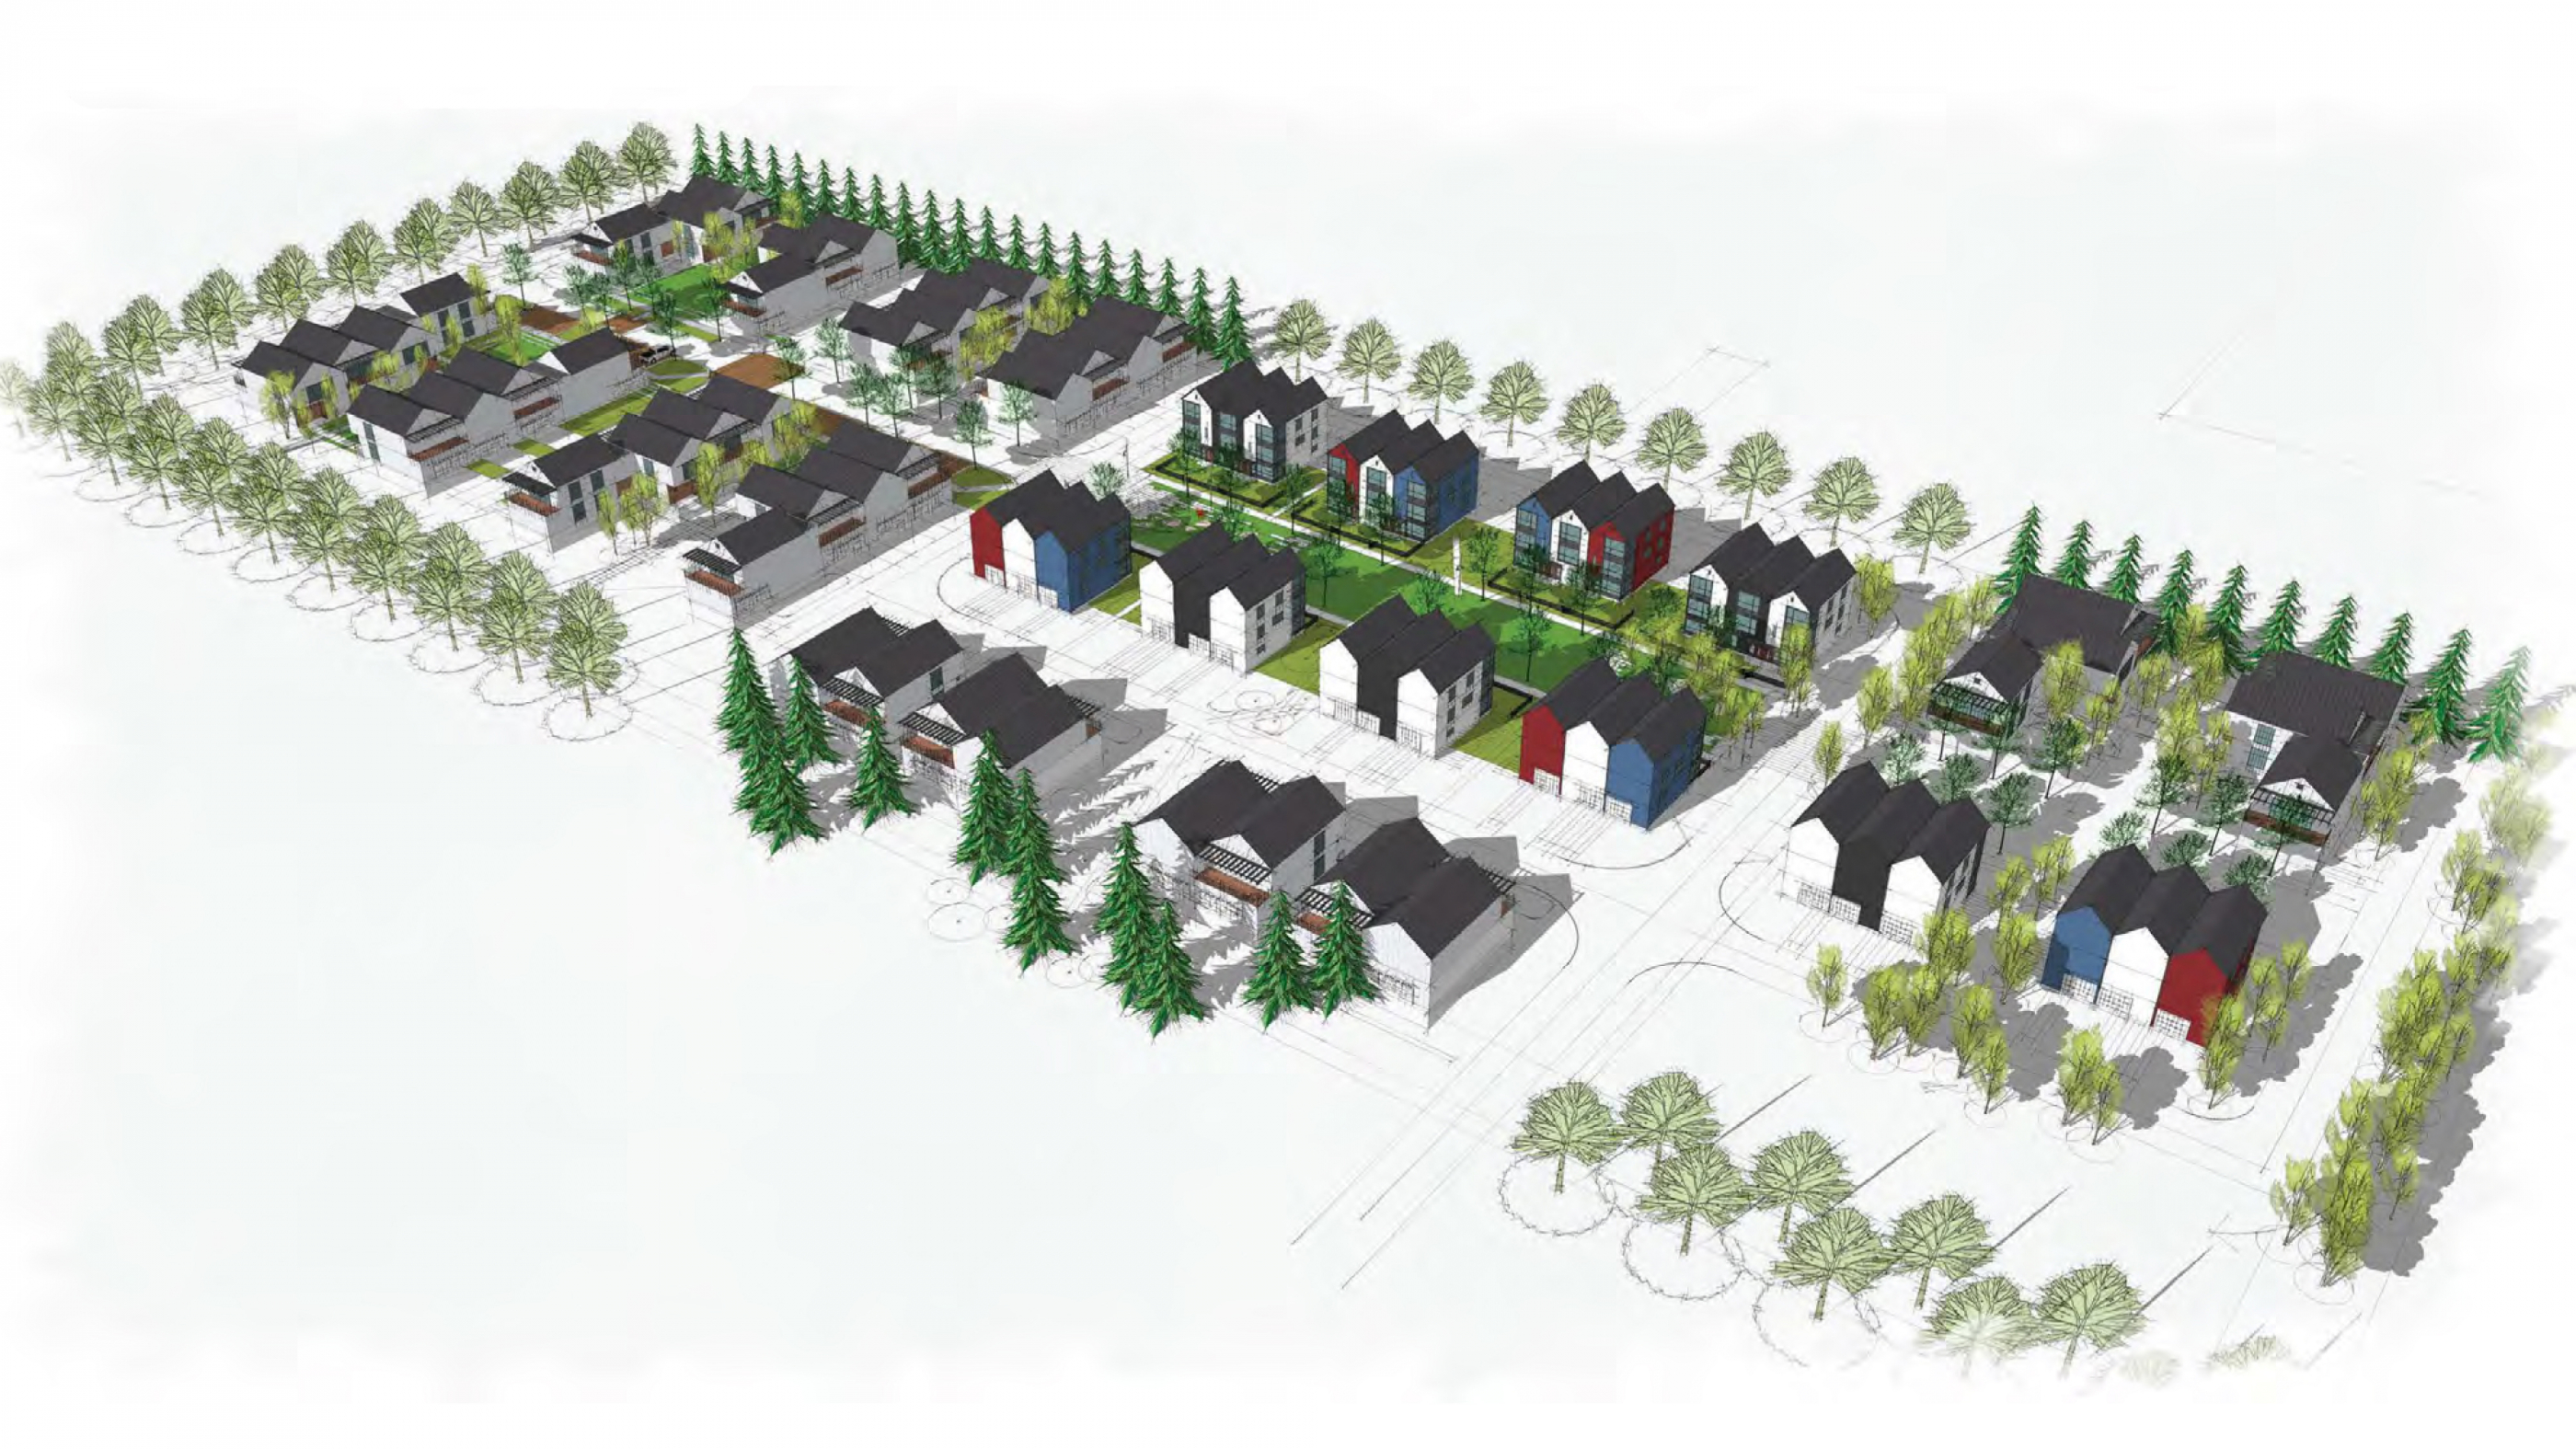 Middlebrook Multi-Family Housing Concept